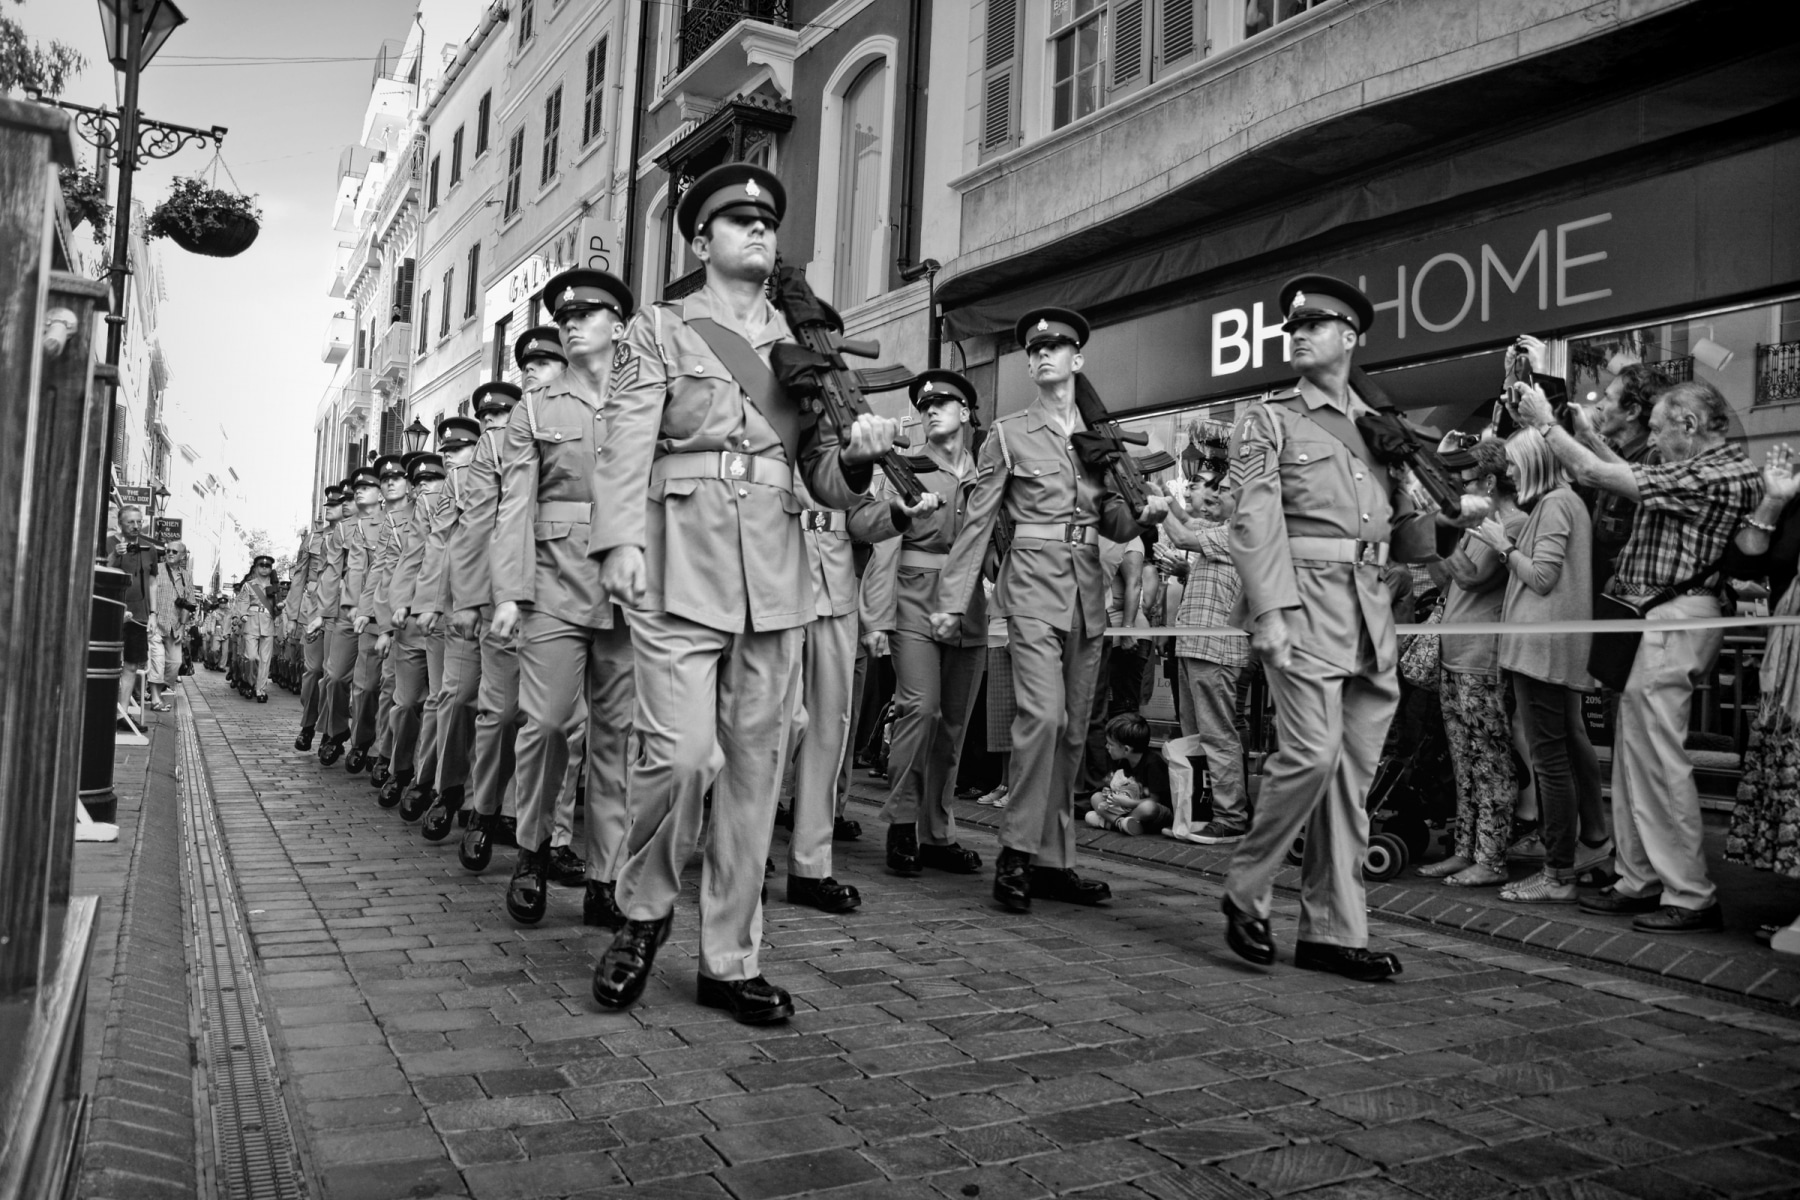 regiment-freedom-of-city-0165-bw_15253259780_o